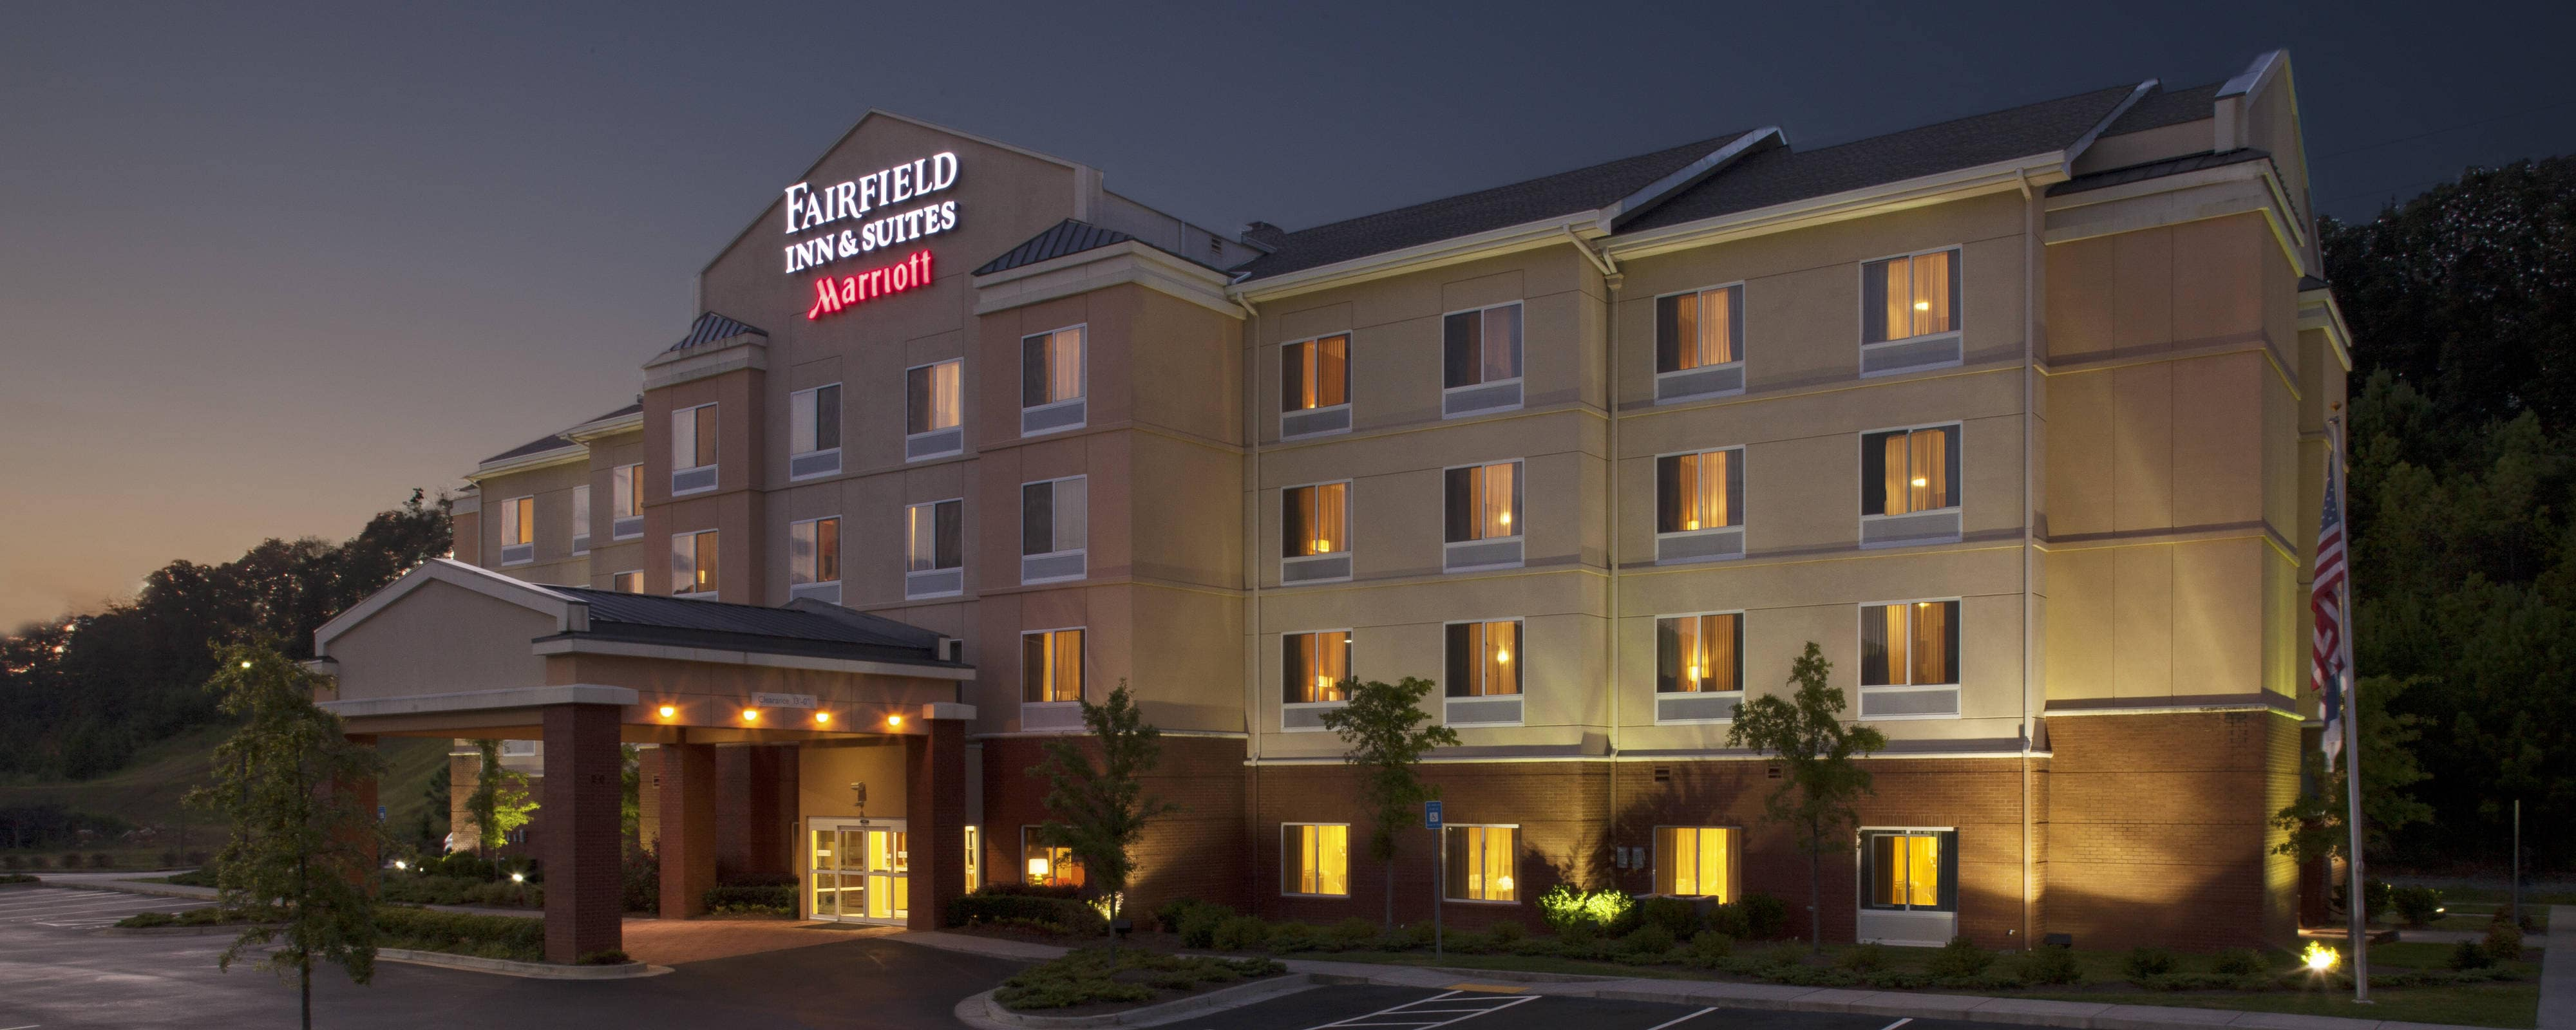 Fairfield Inn & Suites Cartersville by Marriott: Beautiful Hotel ...